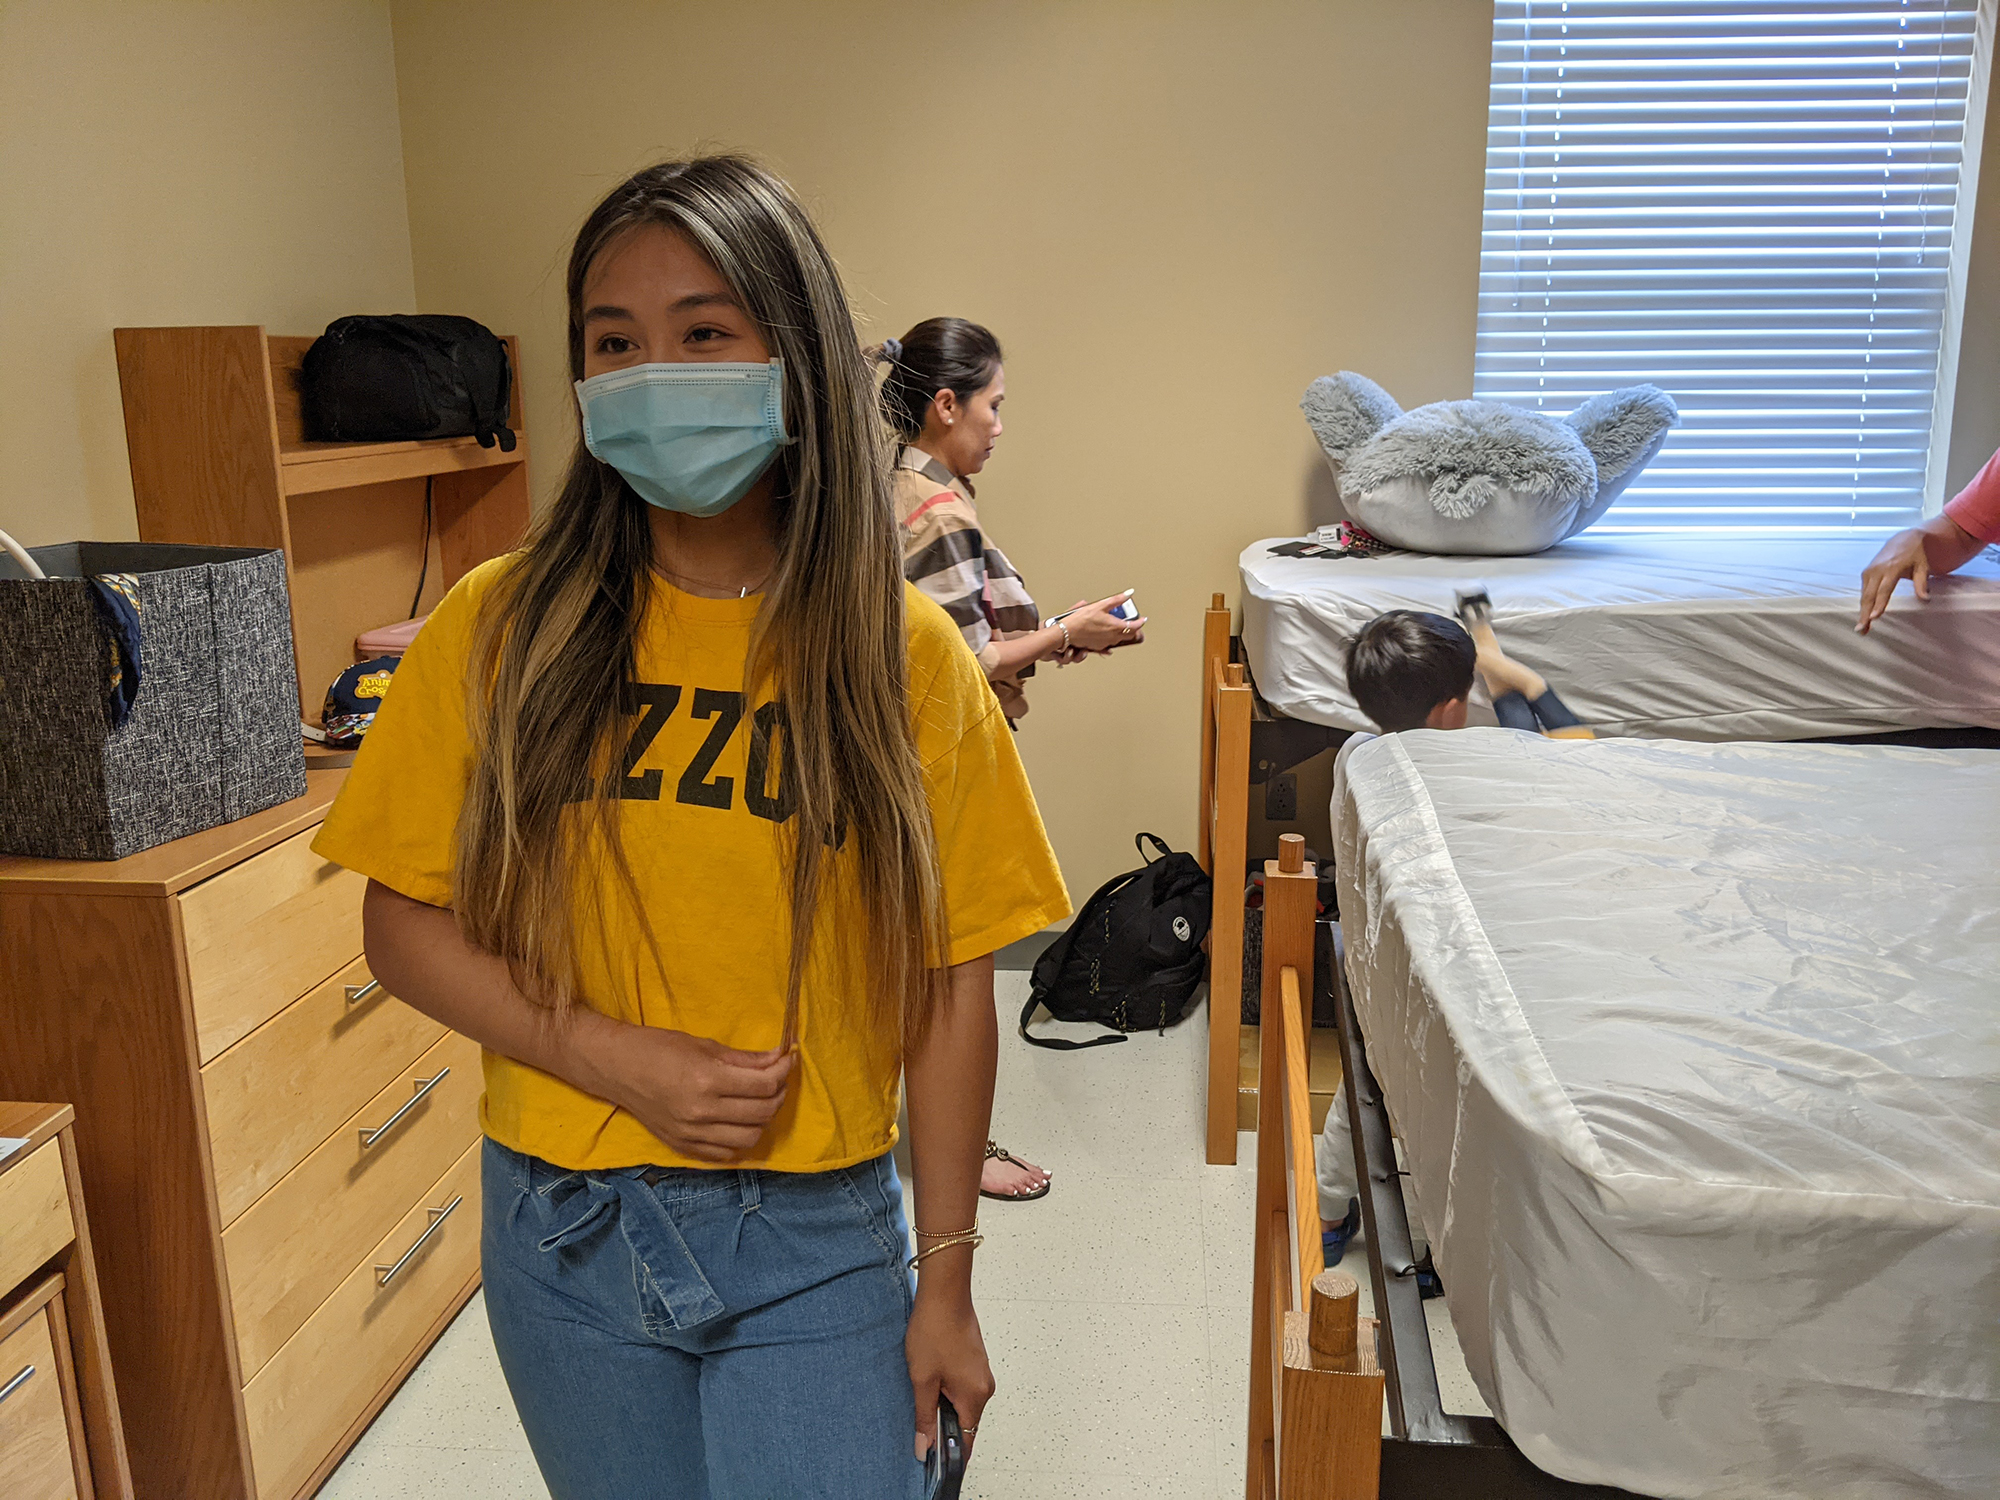 a girl smiling with a face mask in a dorm room